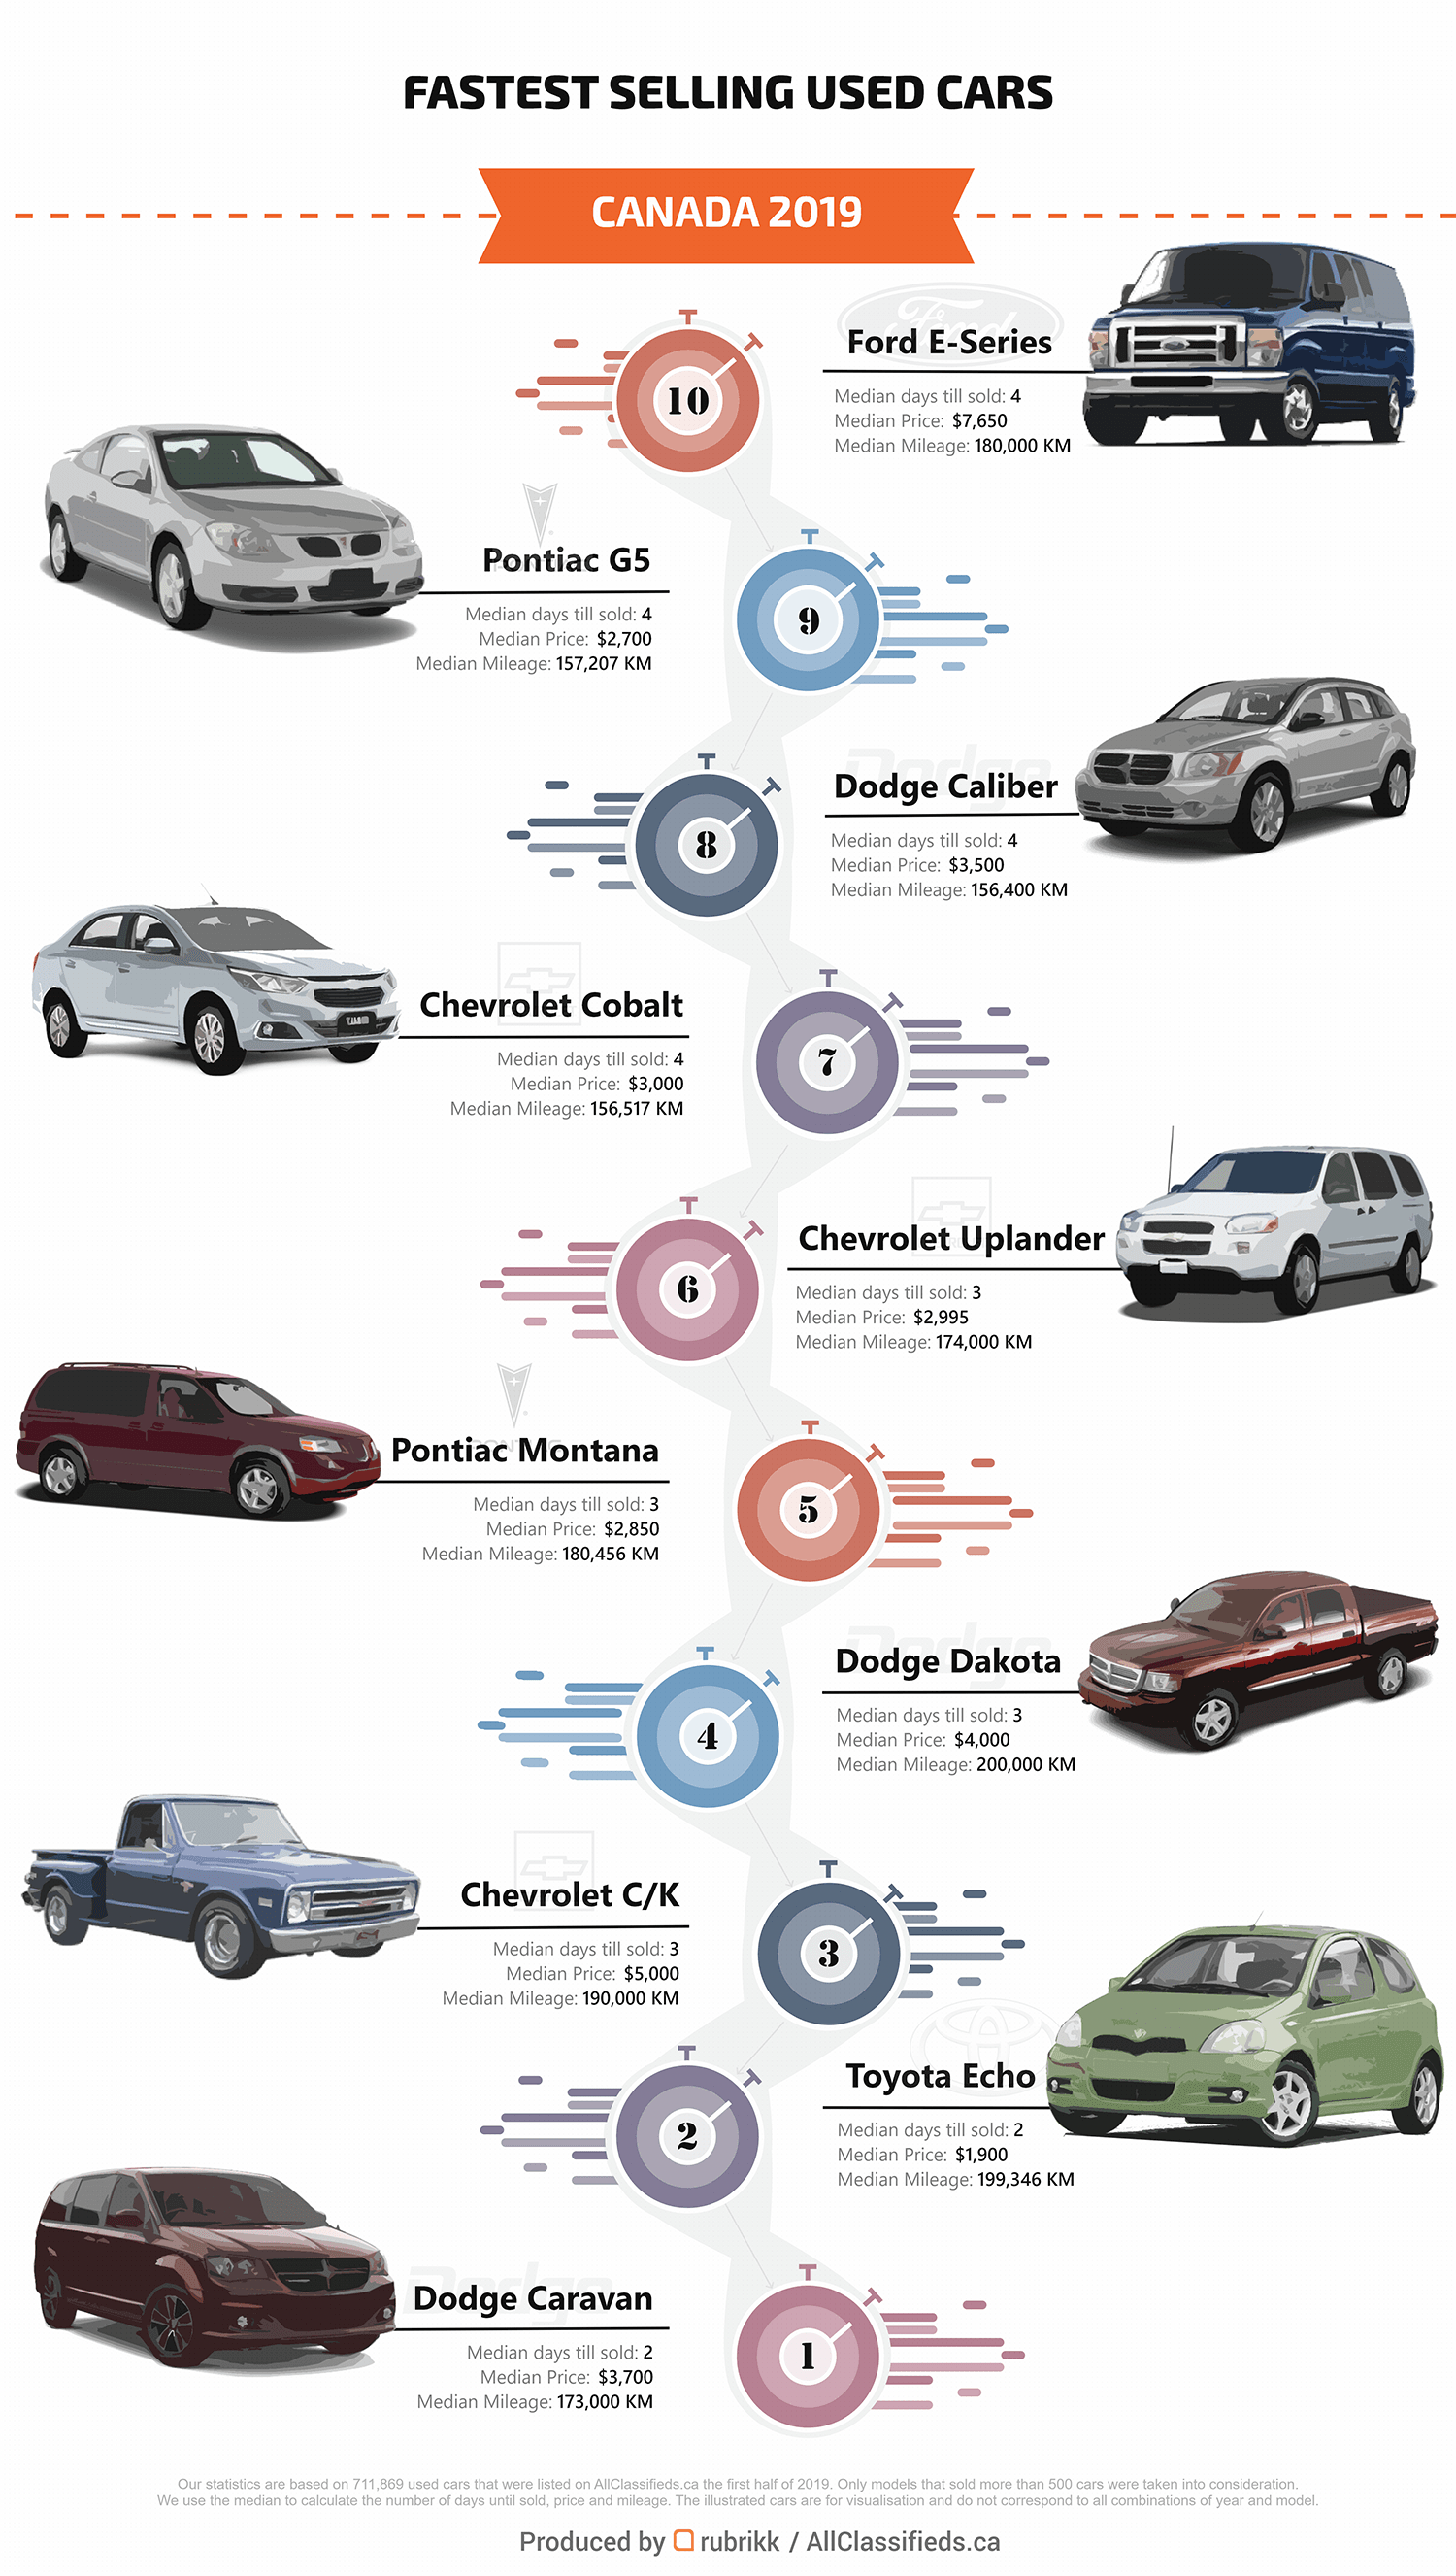 Fastest sold cars